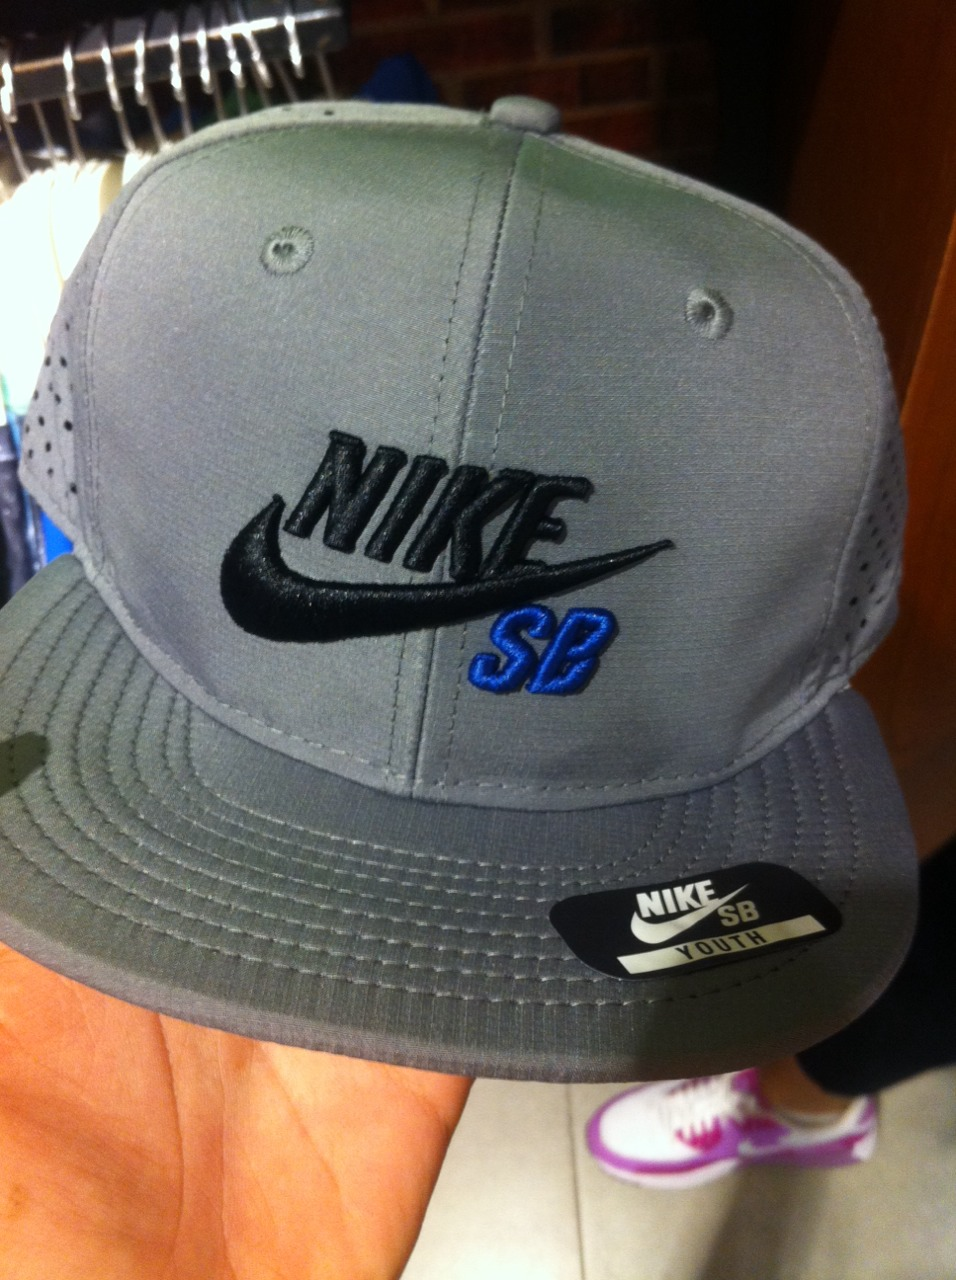 where to buy jual topi snapback nike sb dri fit original kevinjordan23  tokopedia c0d5e a6dc4 a56925fefa